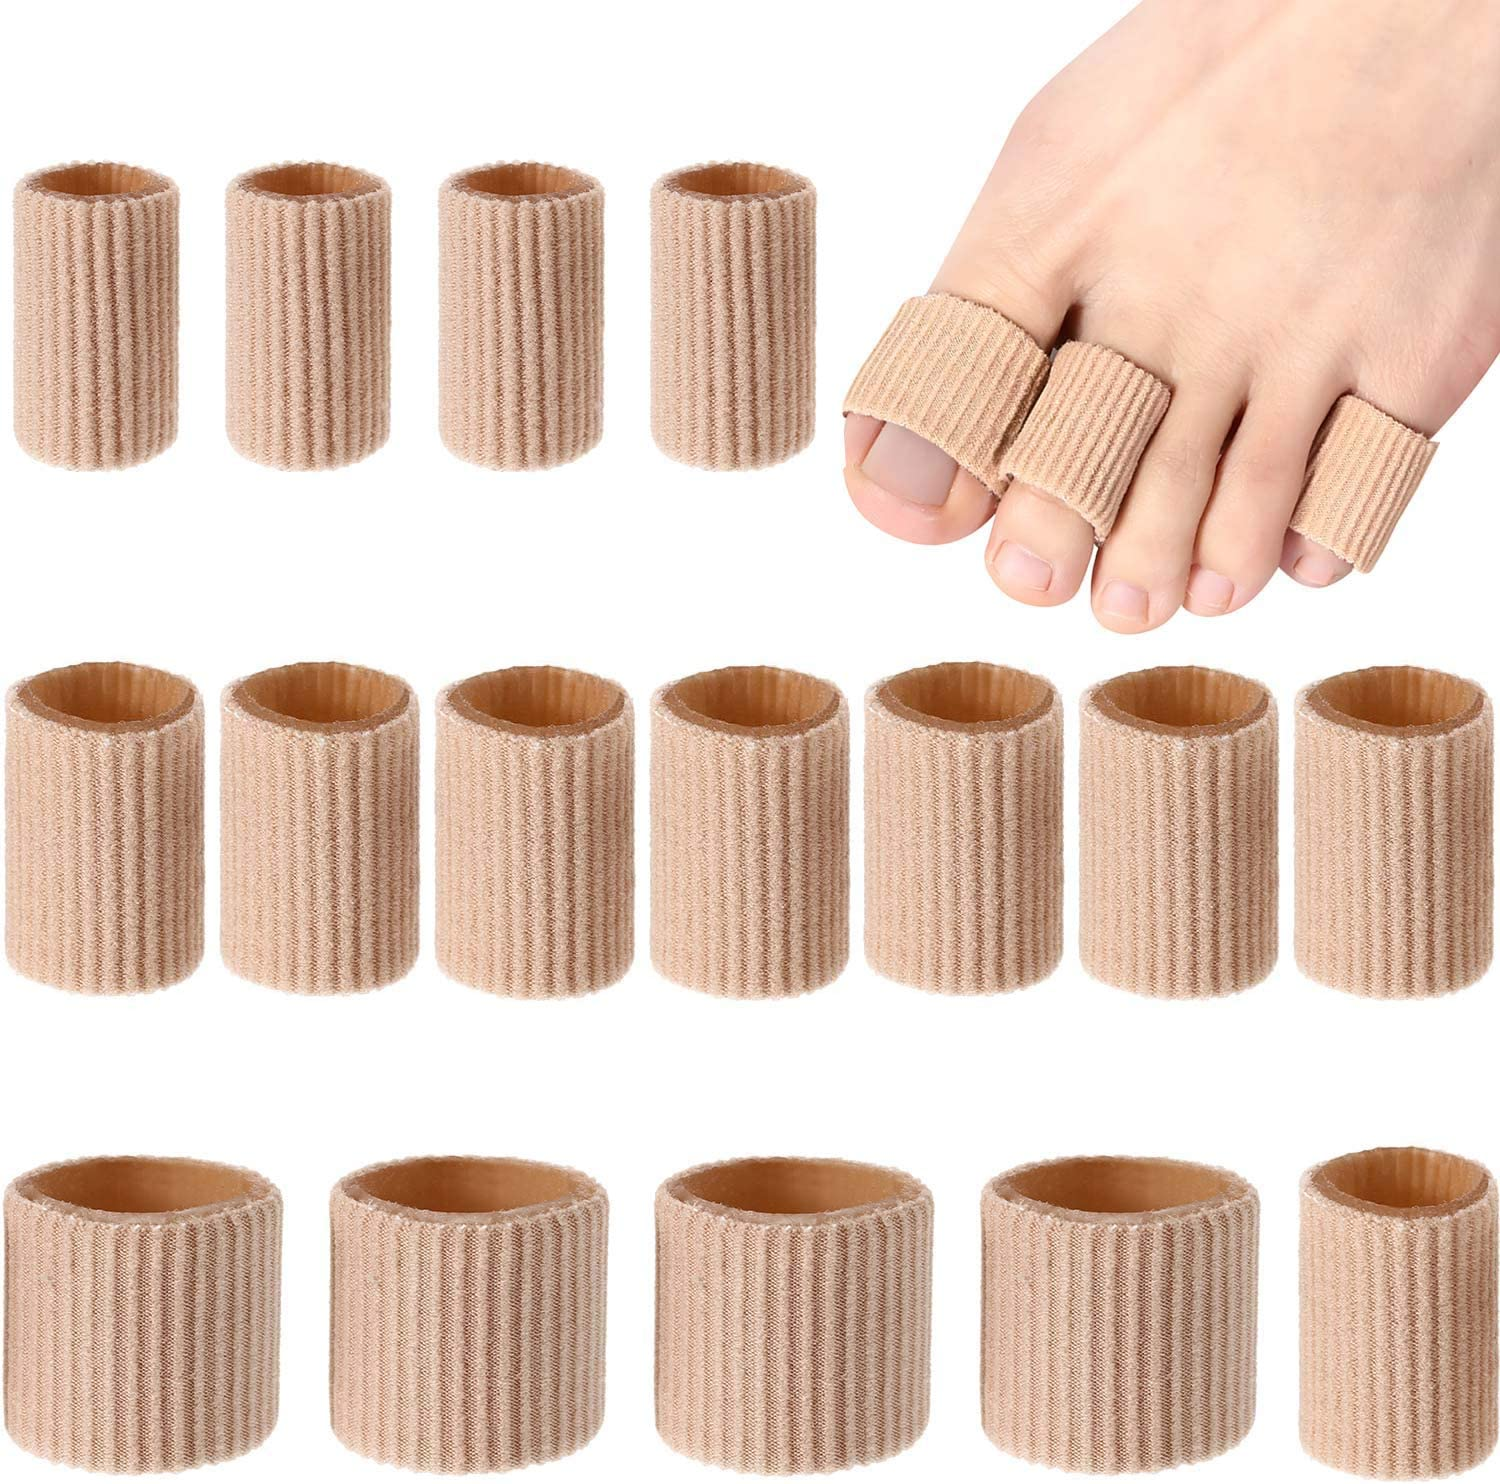 Toe Cushion Tube Toe Tubes Sleeves Soft Gel Corn Pad Protectors for Cushions Corns, Blisters, Calluses, Toes and Fingers (16 Pieces, Mixed Size Toe Cushion Tube): Health & Personal Care